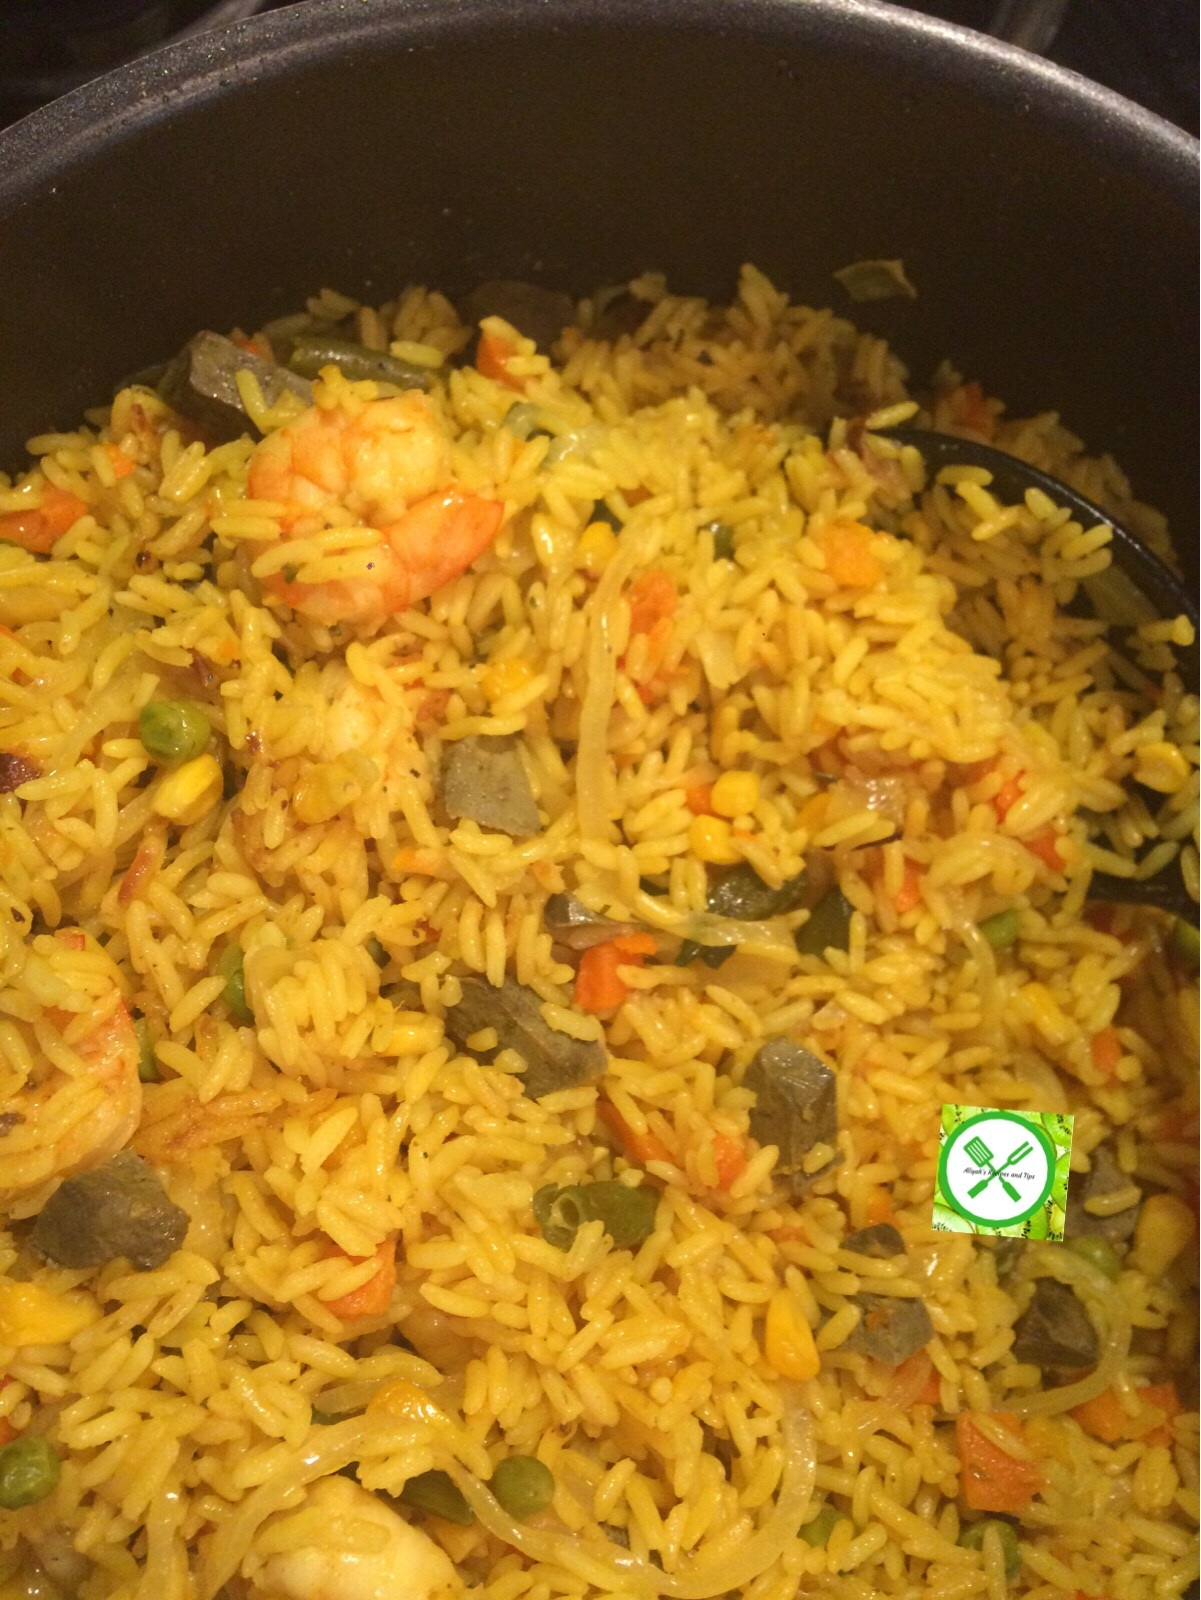 nigerian fried rice, Chicken, Plantain, Recipe, Jollof rice, Chinese, Delicious, Delicious fried rice, Traditional fried rice, nigerian fried rice, nigerian rice recipe, Nigerian fried with shrimp, Joloof rice and frie drice, Party Nigerian fried rice, Party Nigerian fried rice with shrimp, Party fried rice